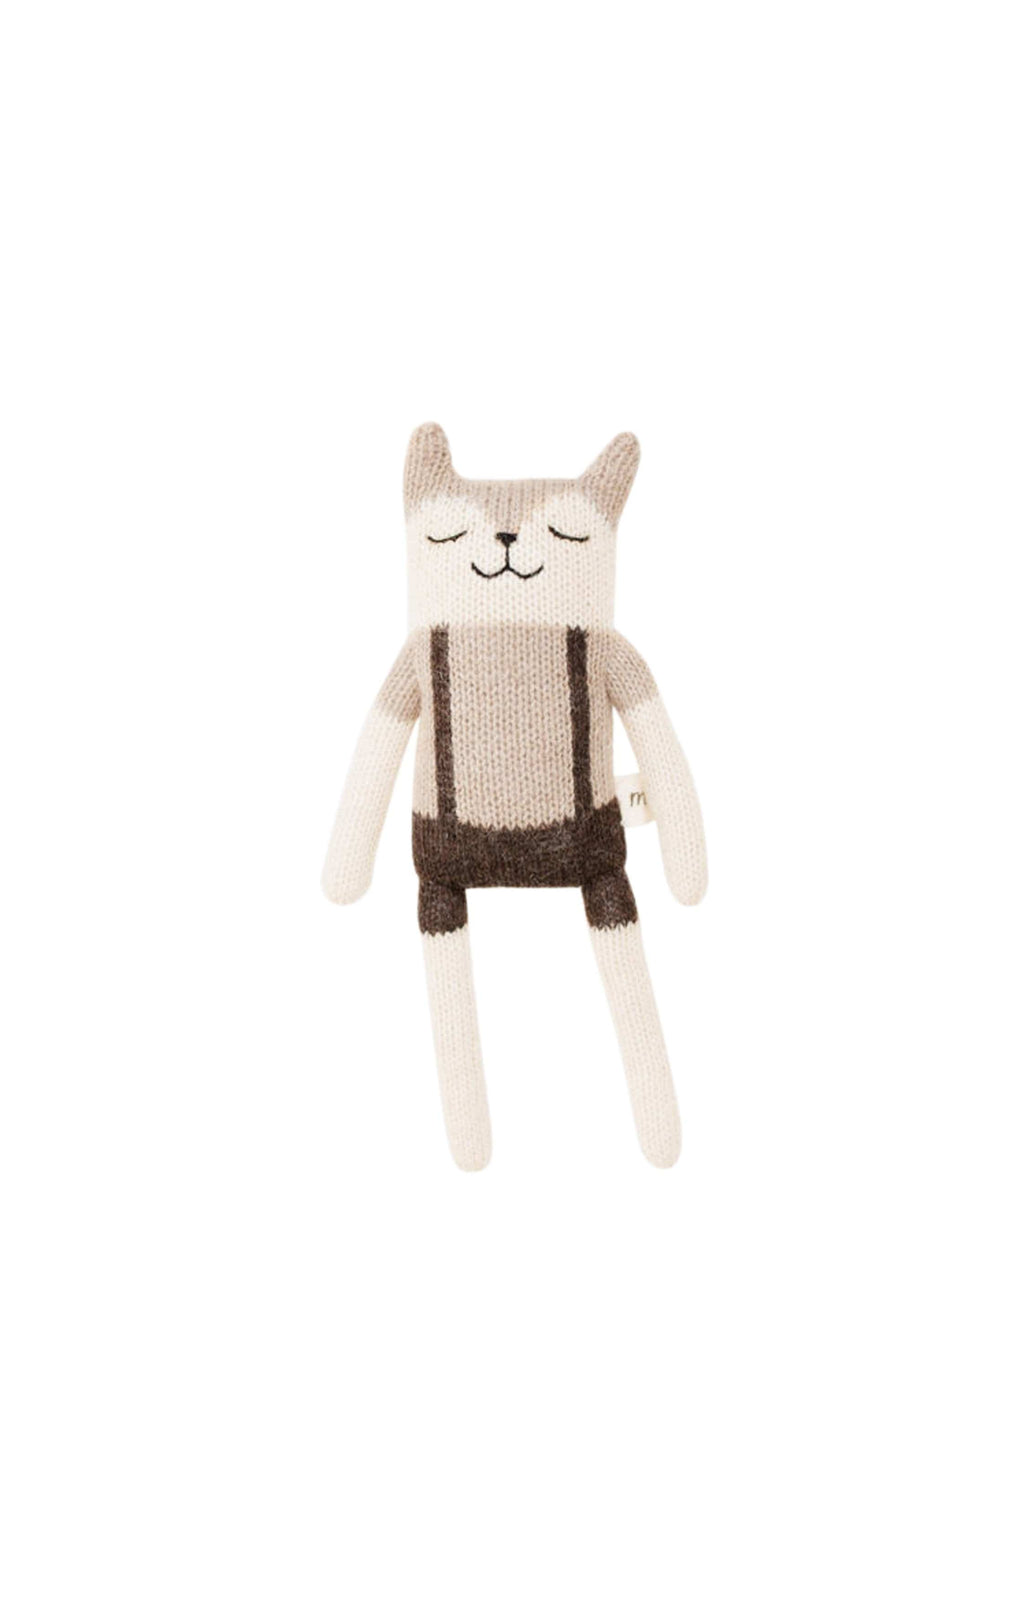 Main Sauvage fawn knit toy with overalls (Pre-Order Feb)